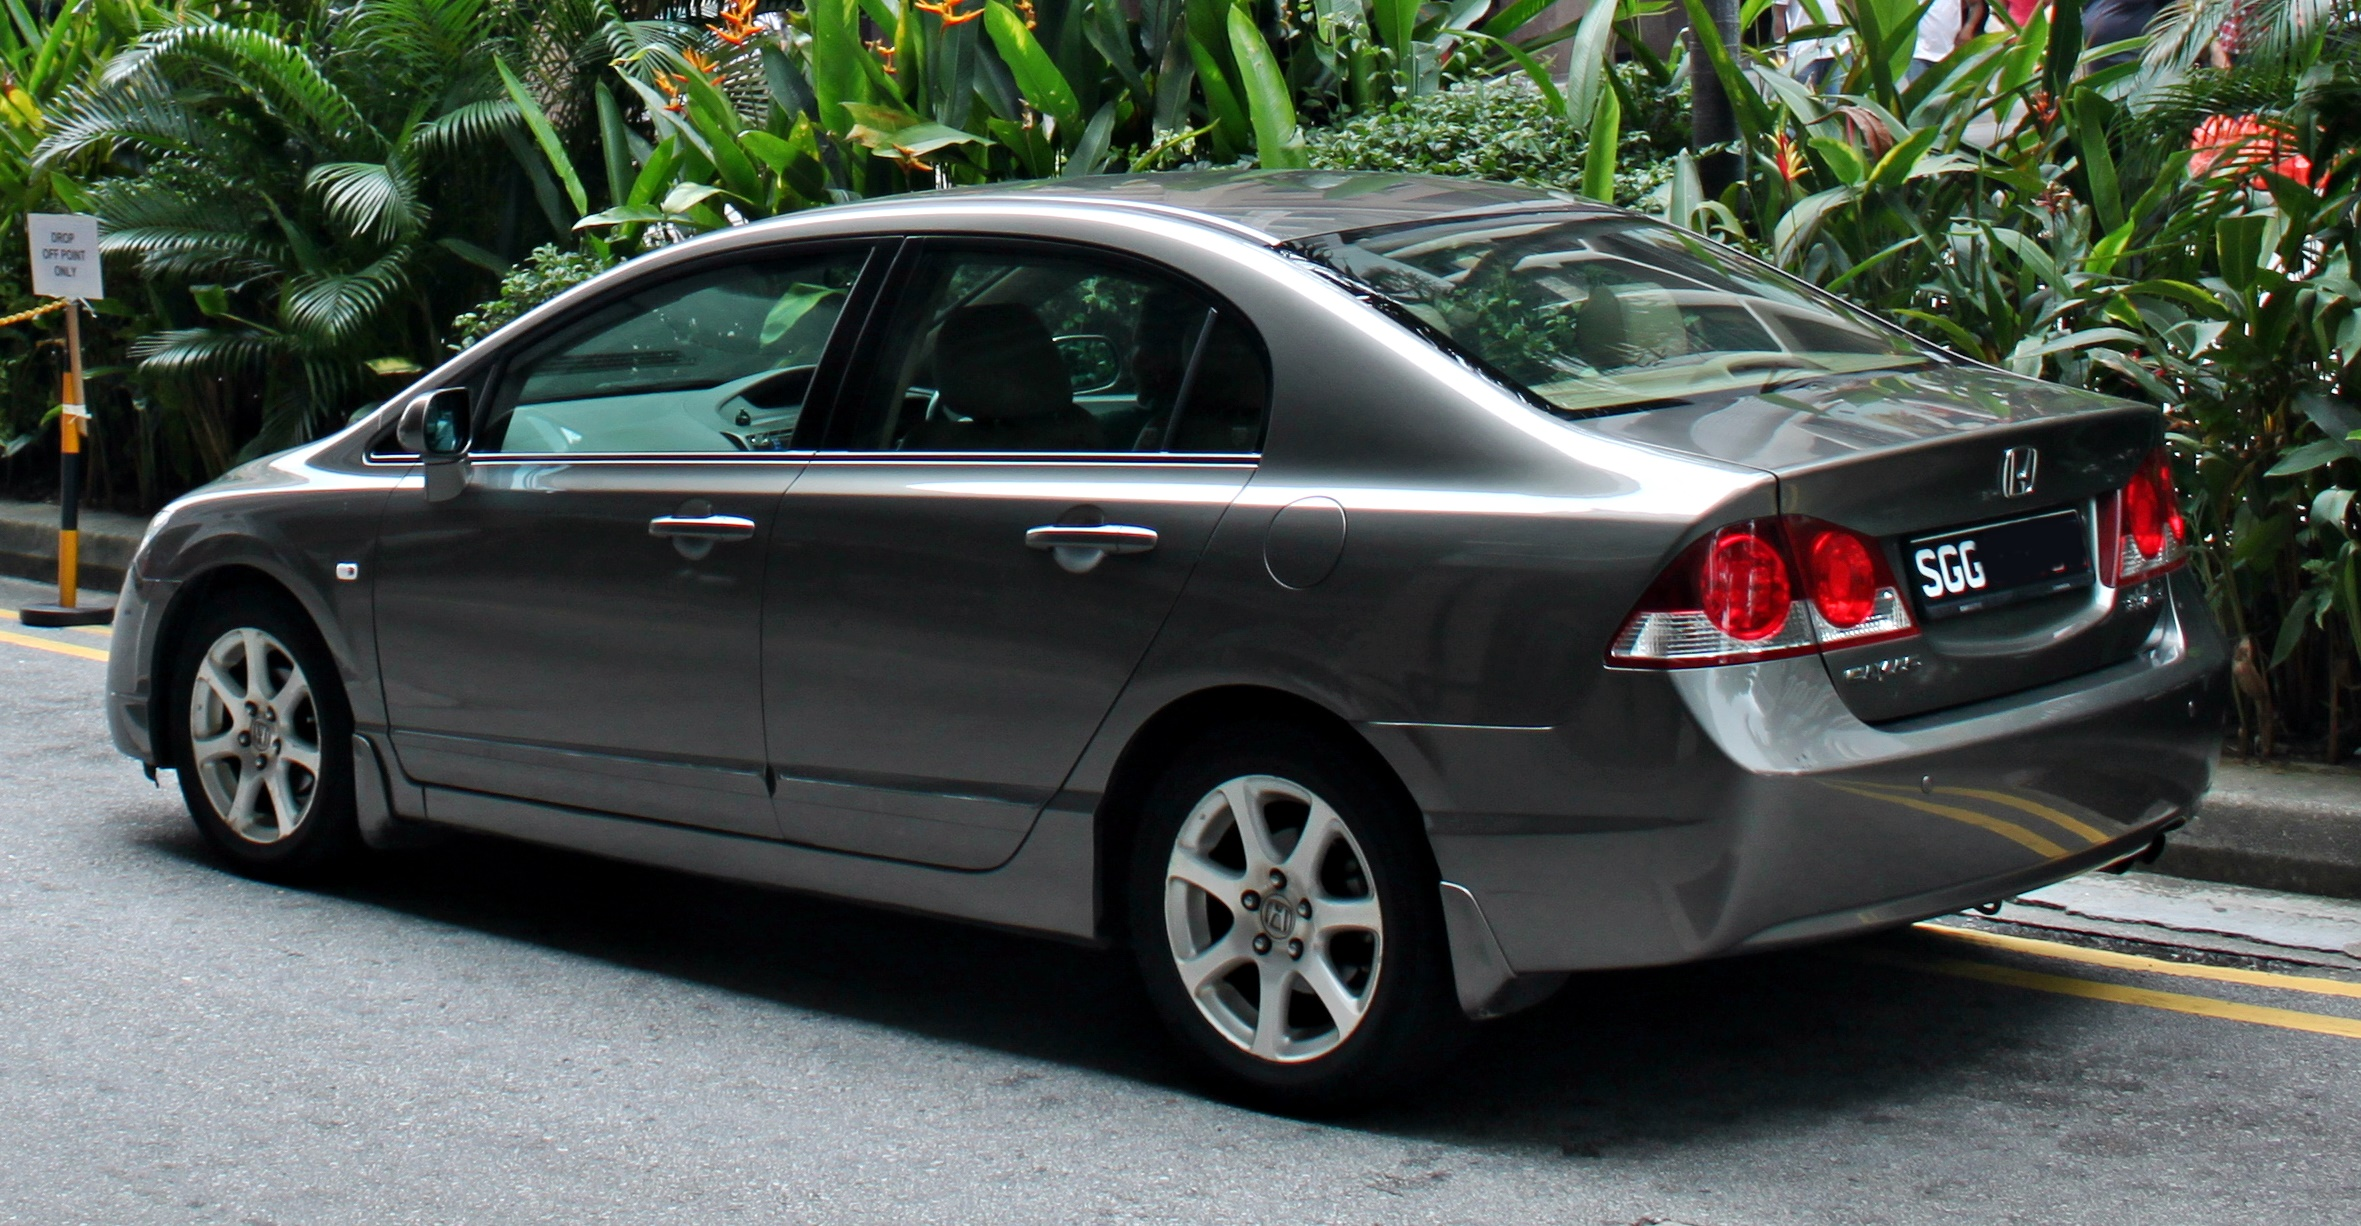 Accord 2013 Coupe >> File:2007 Honda Civic Sedan.JPG - Wikimedia Commons